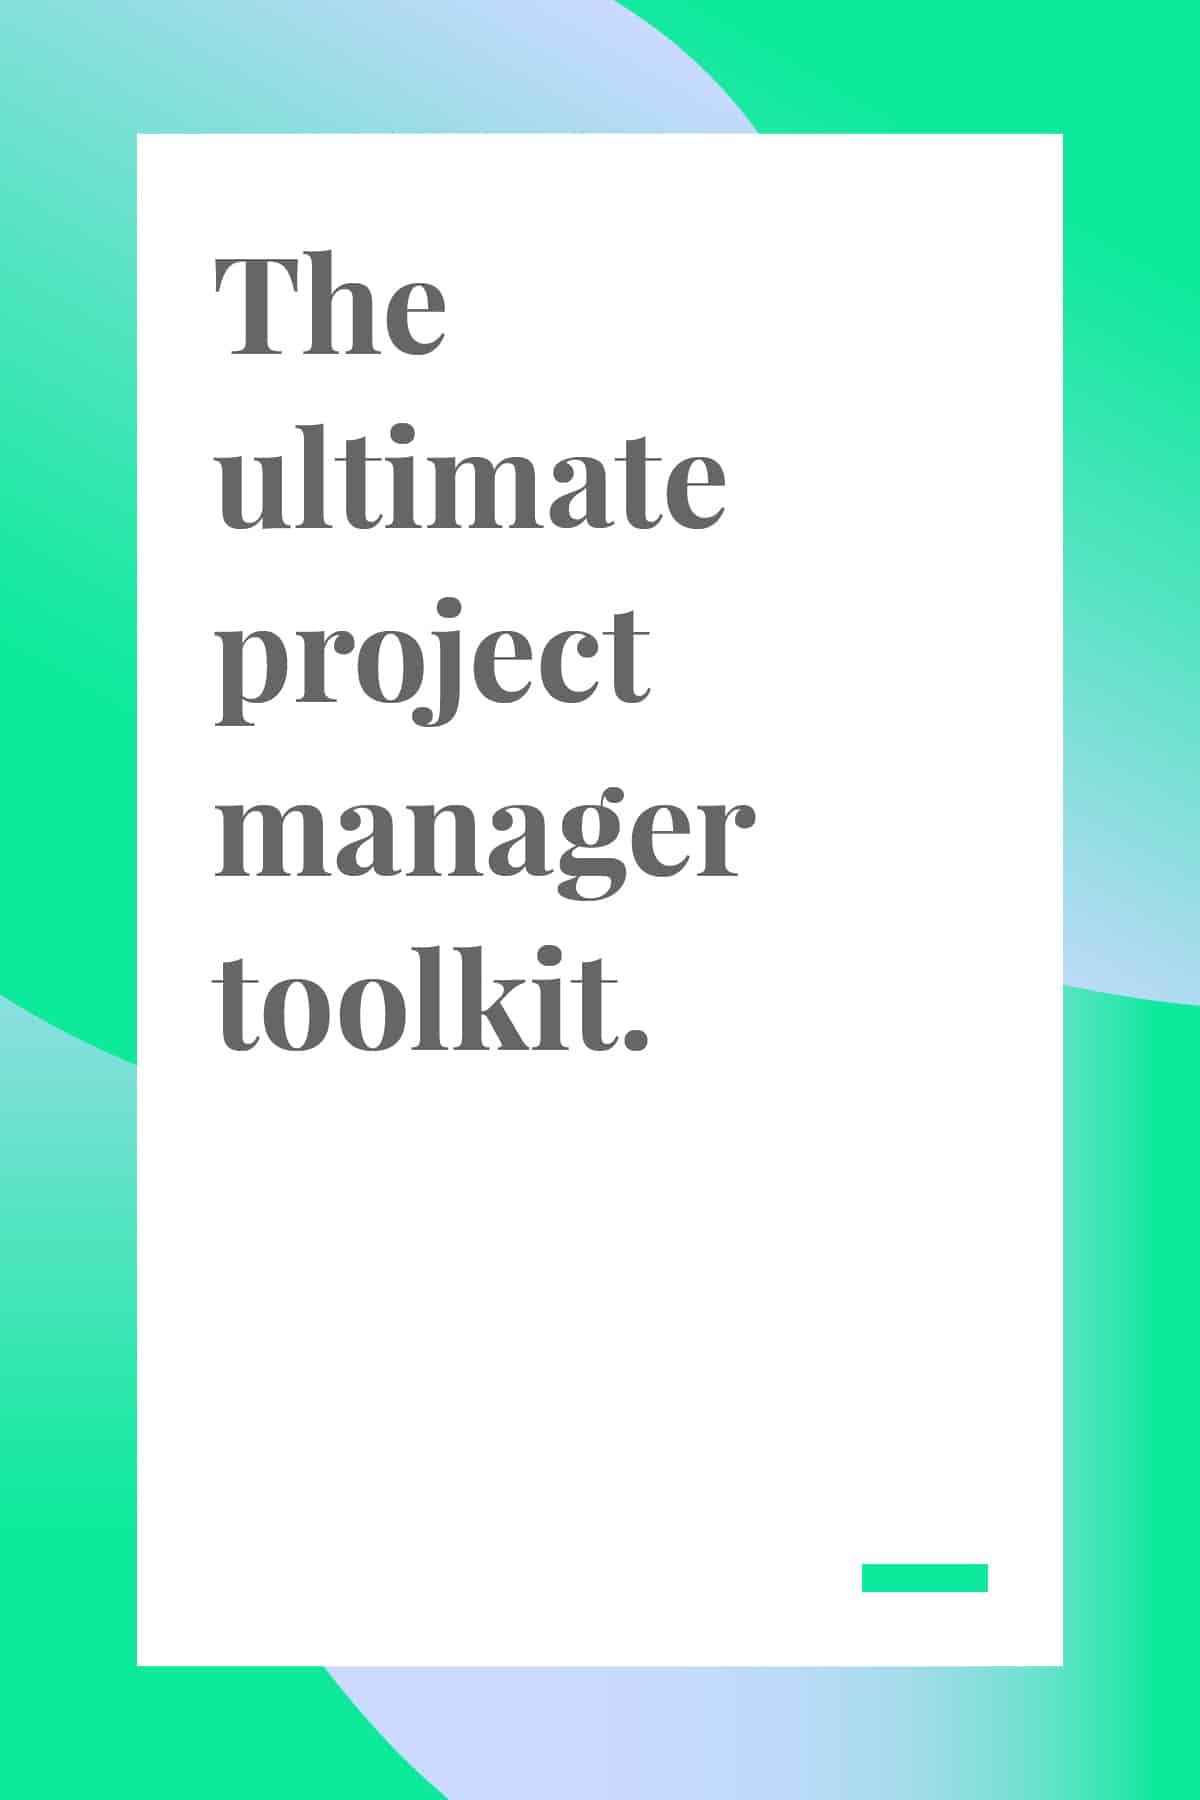 Need help with project management? Check out our ultimate project manager toolkit to find all the project management tools and strategies you need to make your project a success. #projectmanagement